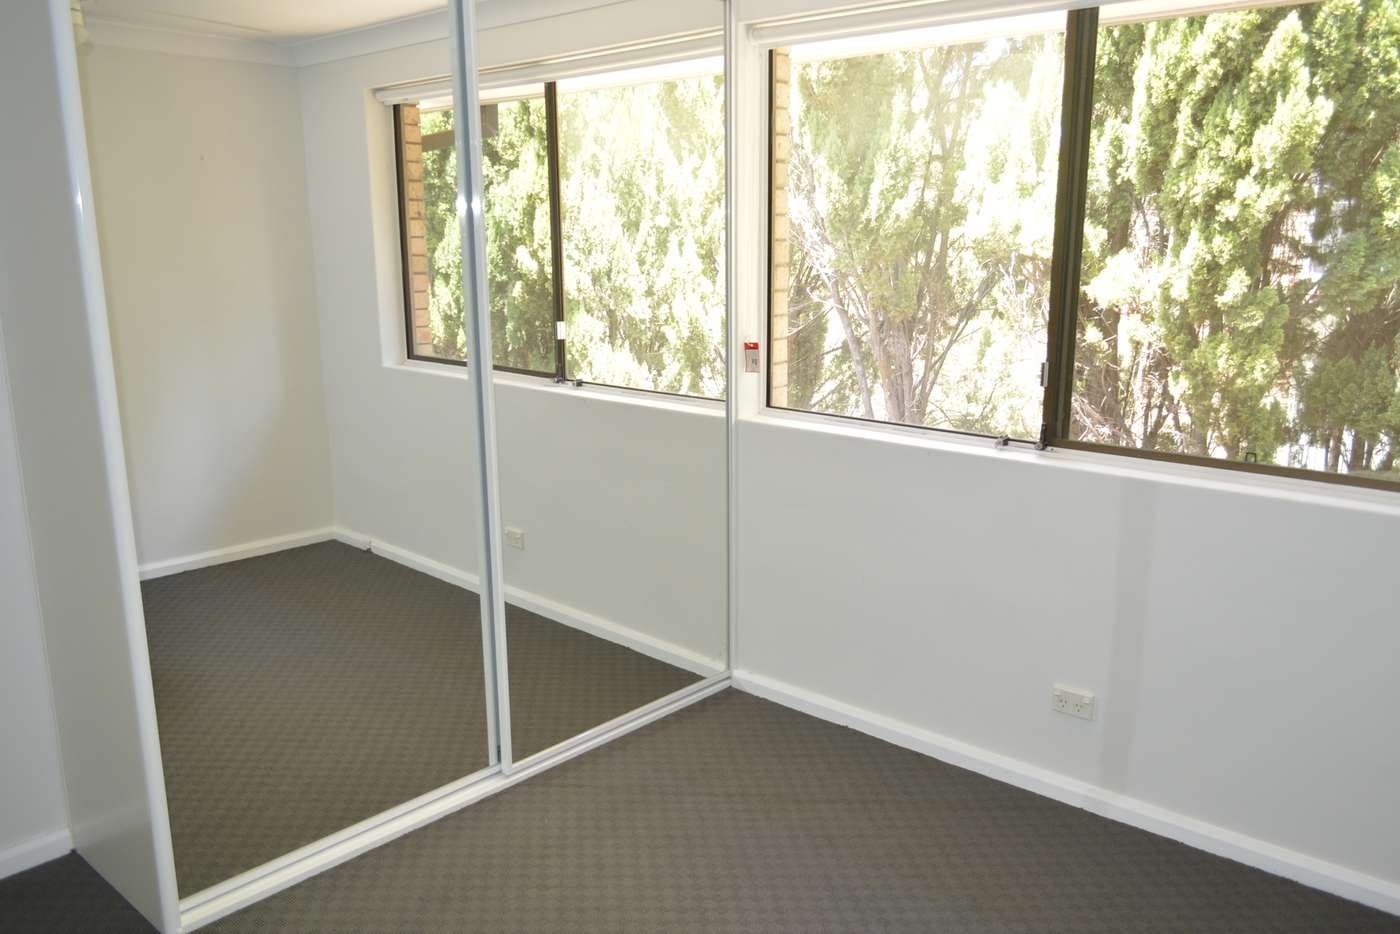 Seventh view of Homely townhouse listing, 22/5-17 Queen Street, Newtown NSW 2042